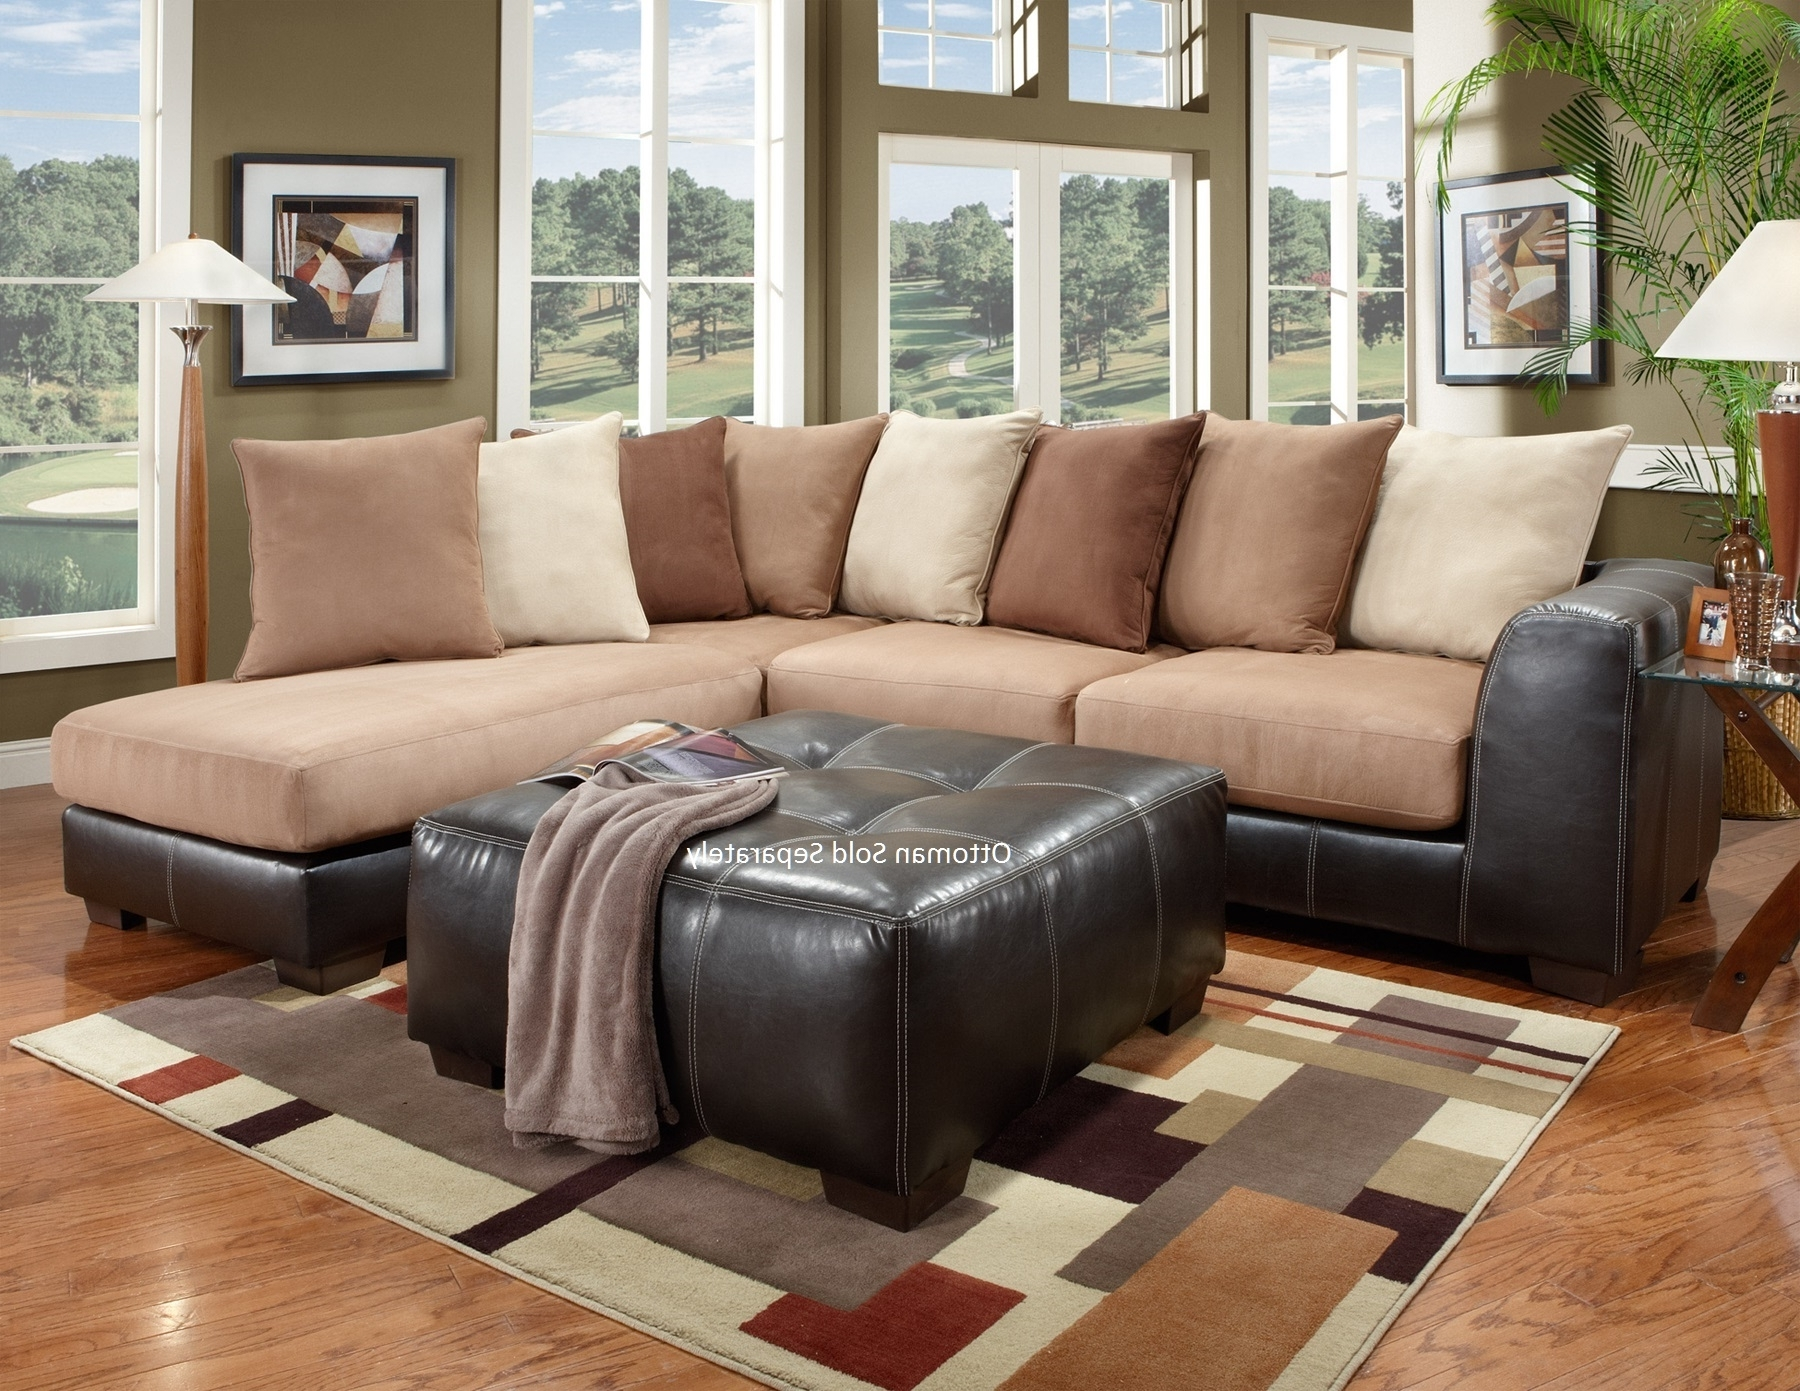 Camel Colored Sectional Sofas Regarding 2018 Furniture (View 4 of 15)